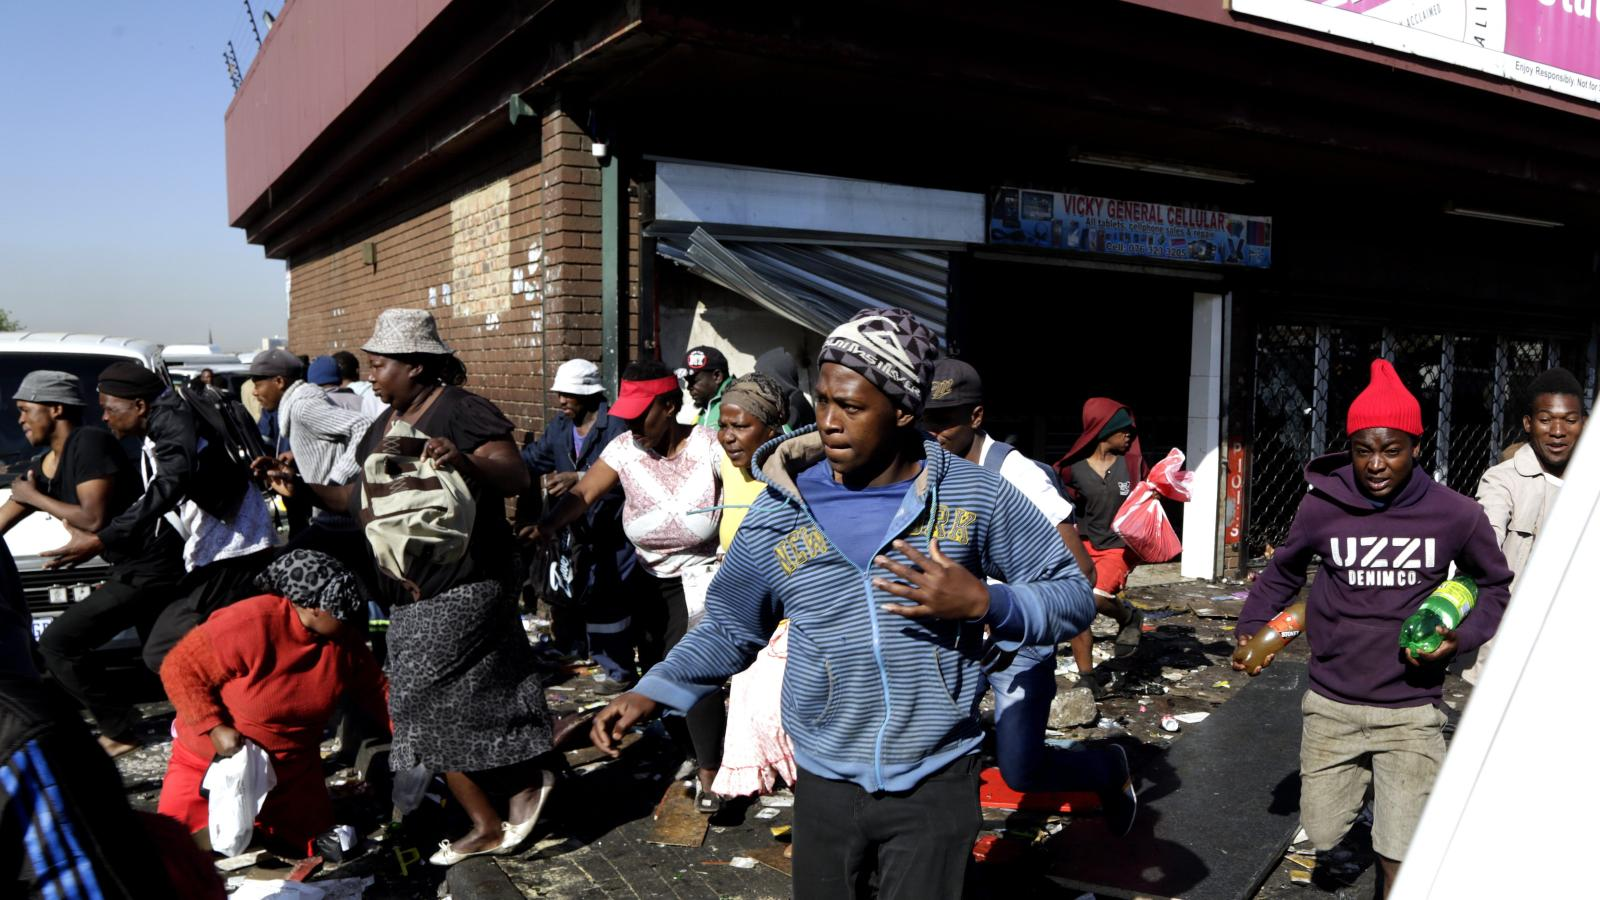 Looters make off with goods from a store in Germiston, east of Johannesburg, South Africa as part of the xenophobic violence against African store owners